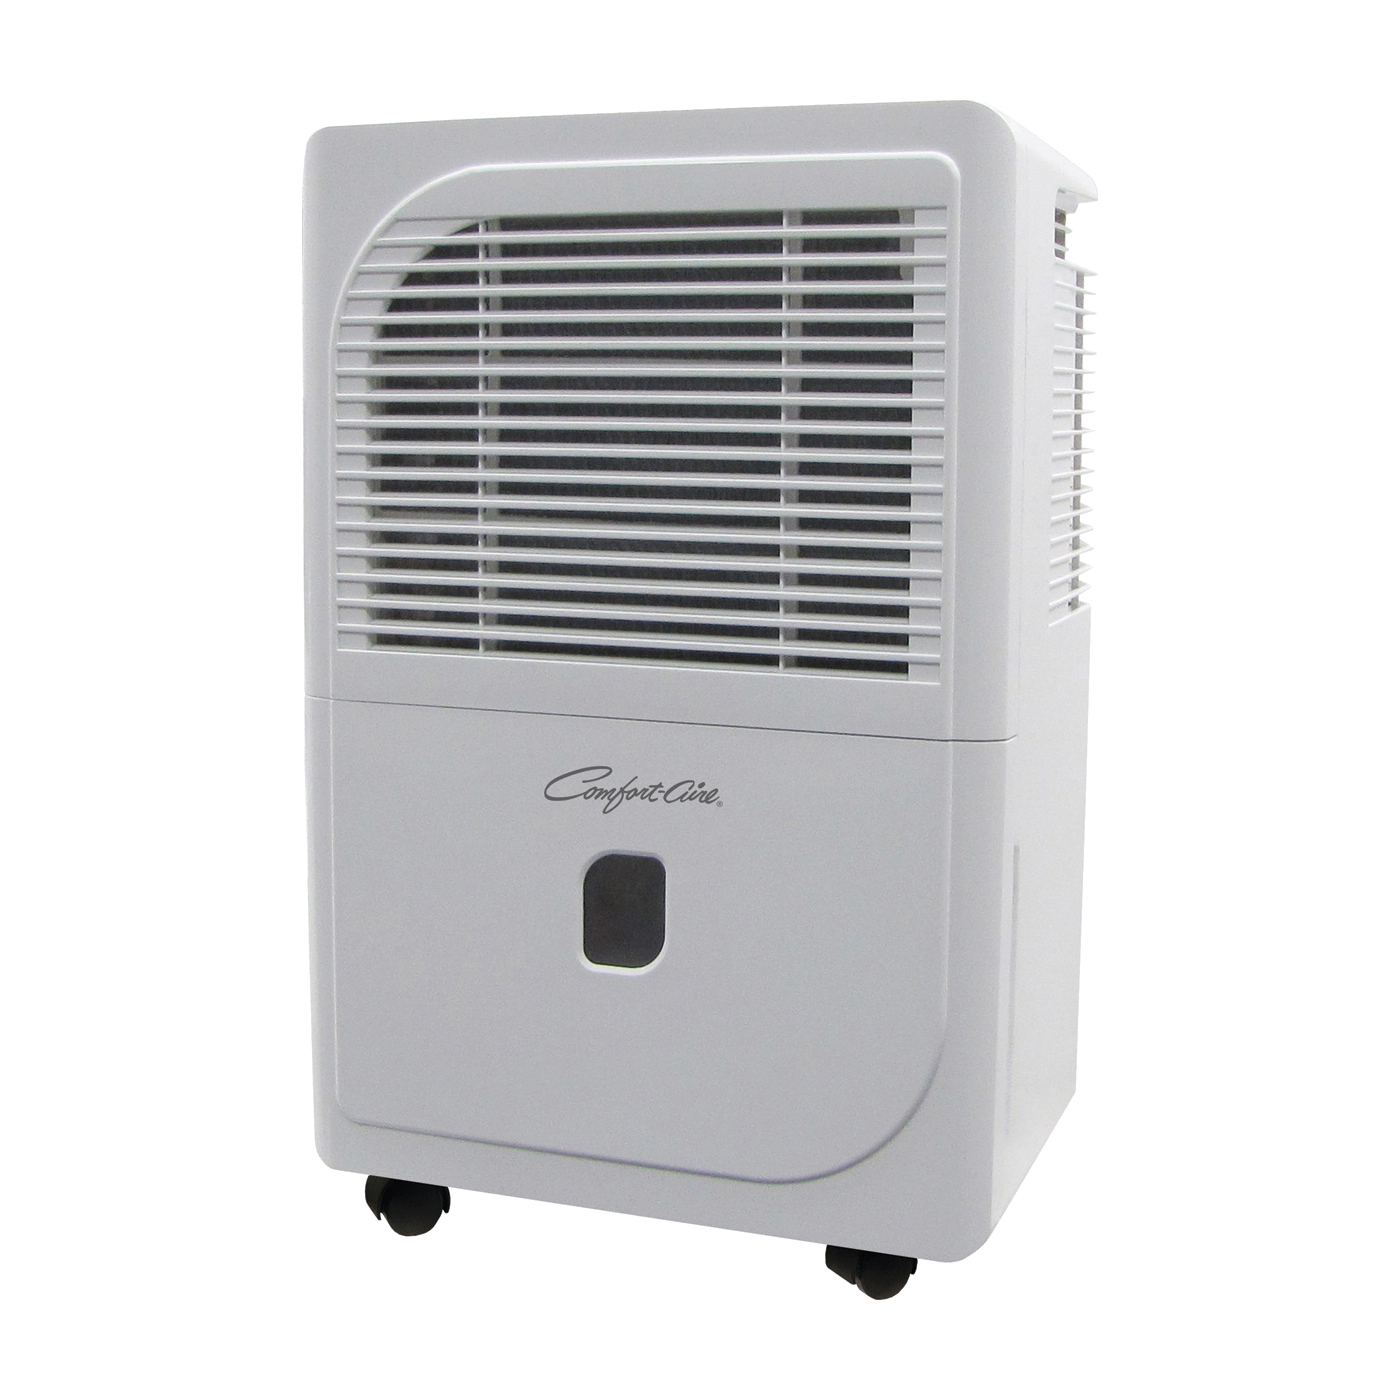 Picture of Comfort-Aire BHDP-701-J Portable Dehumidifier, 6.9 A, 115 V, 720 W, 2-Speed, 70 pts/day Humidity Removal